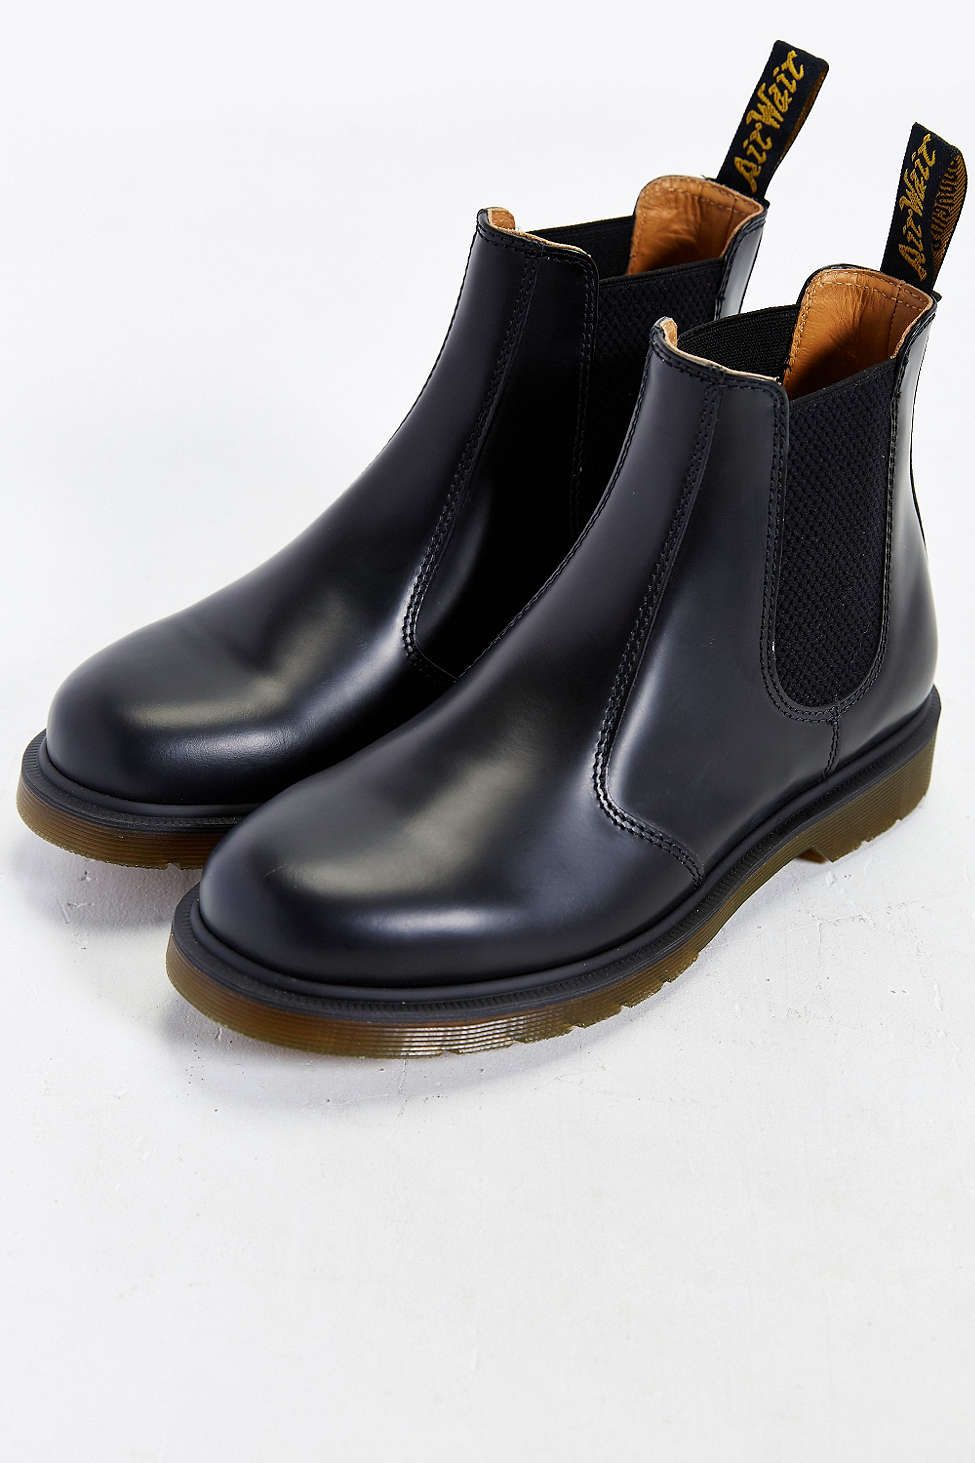 17cee37a7f2 Dr. Martens 2976 Chelsea Boot